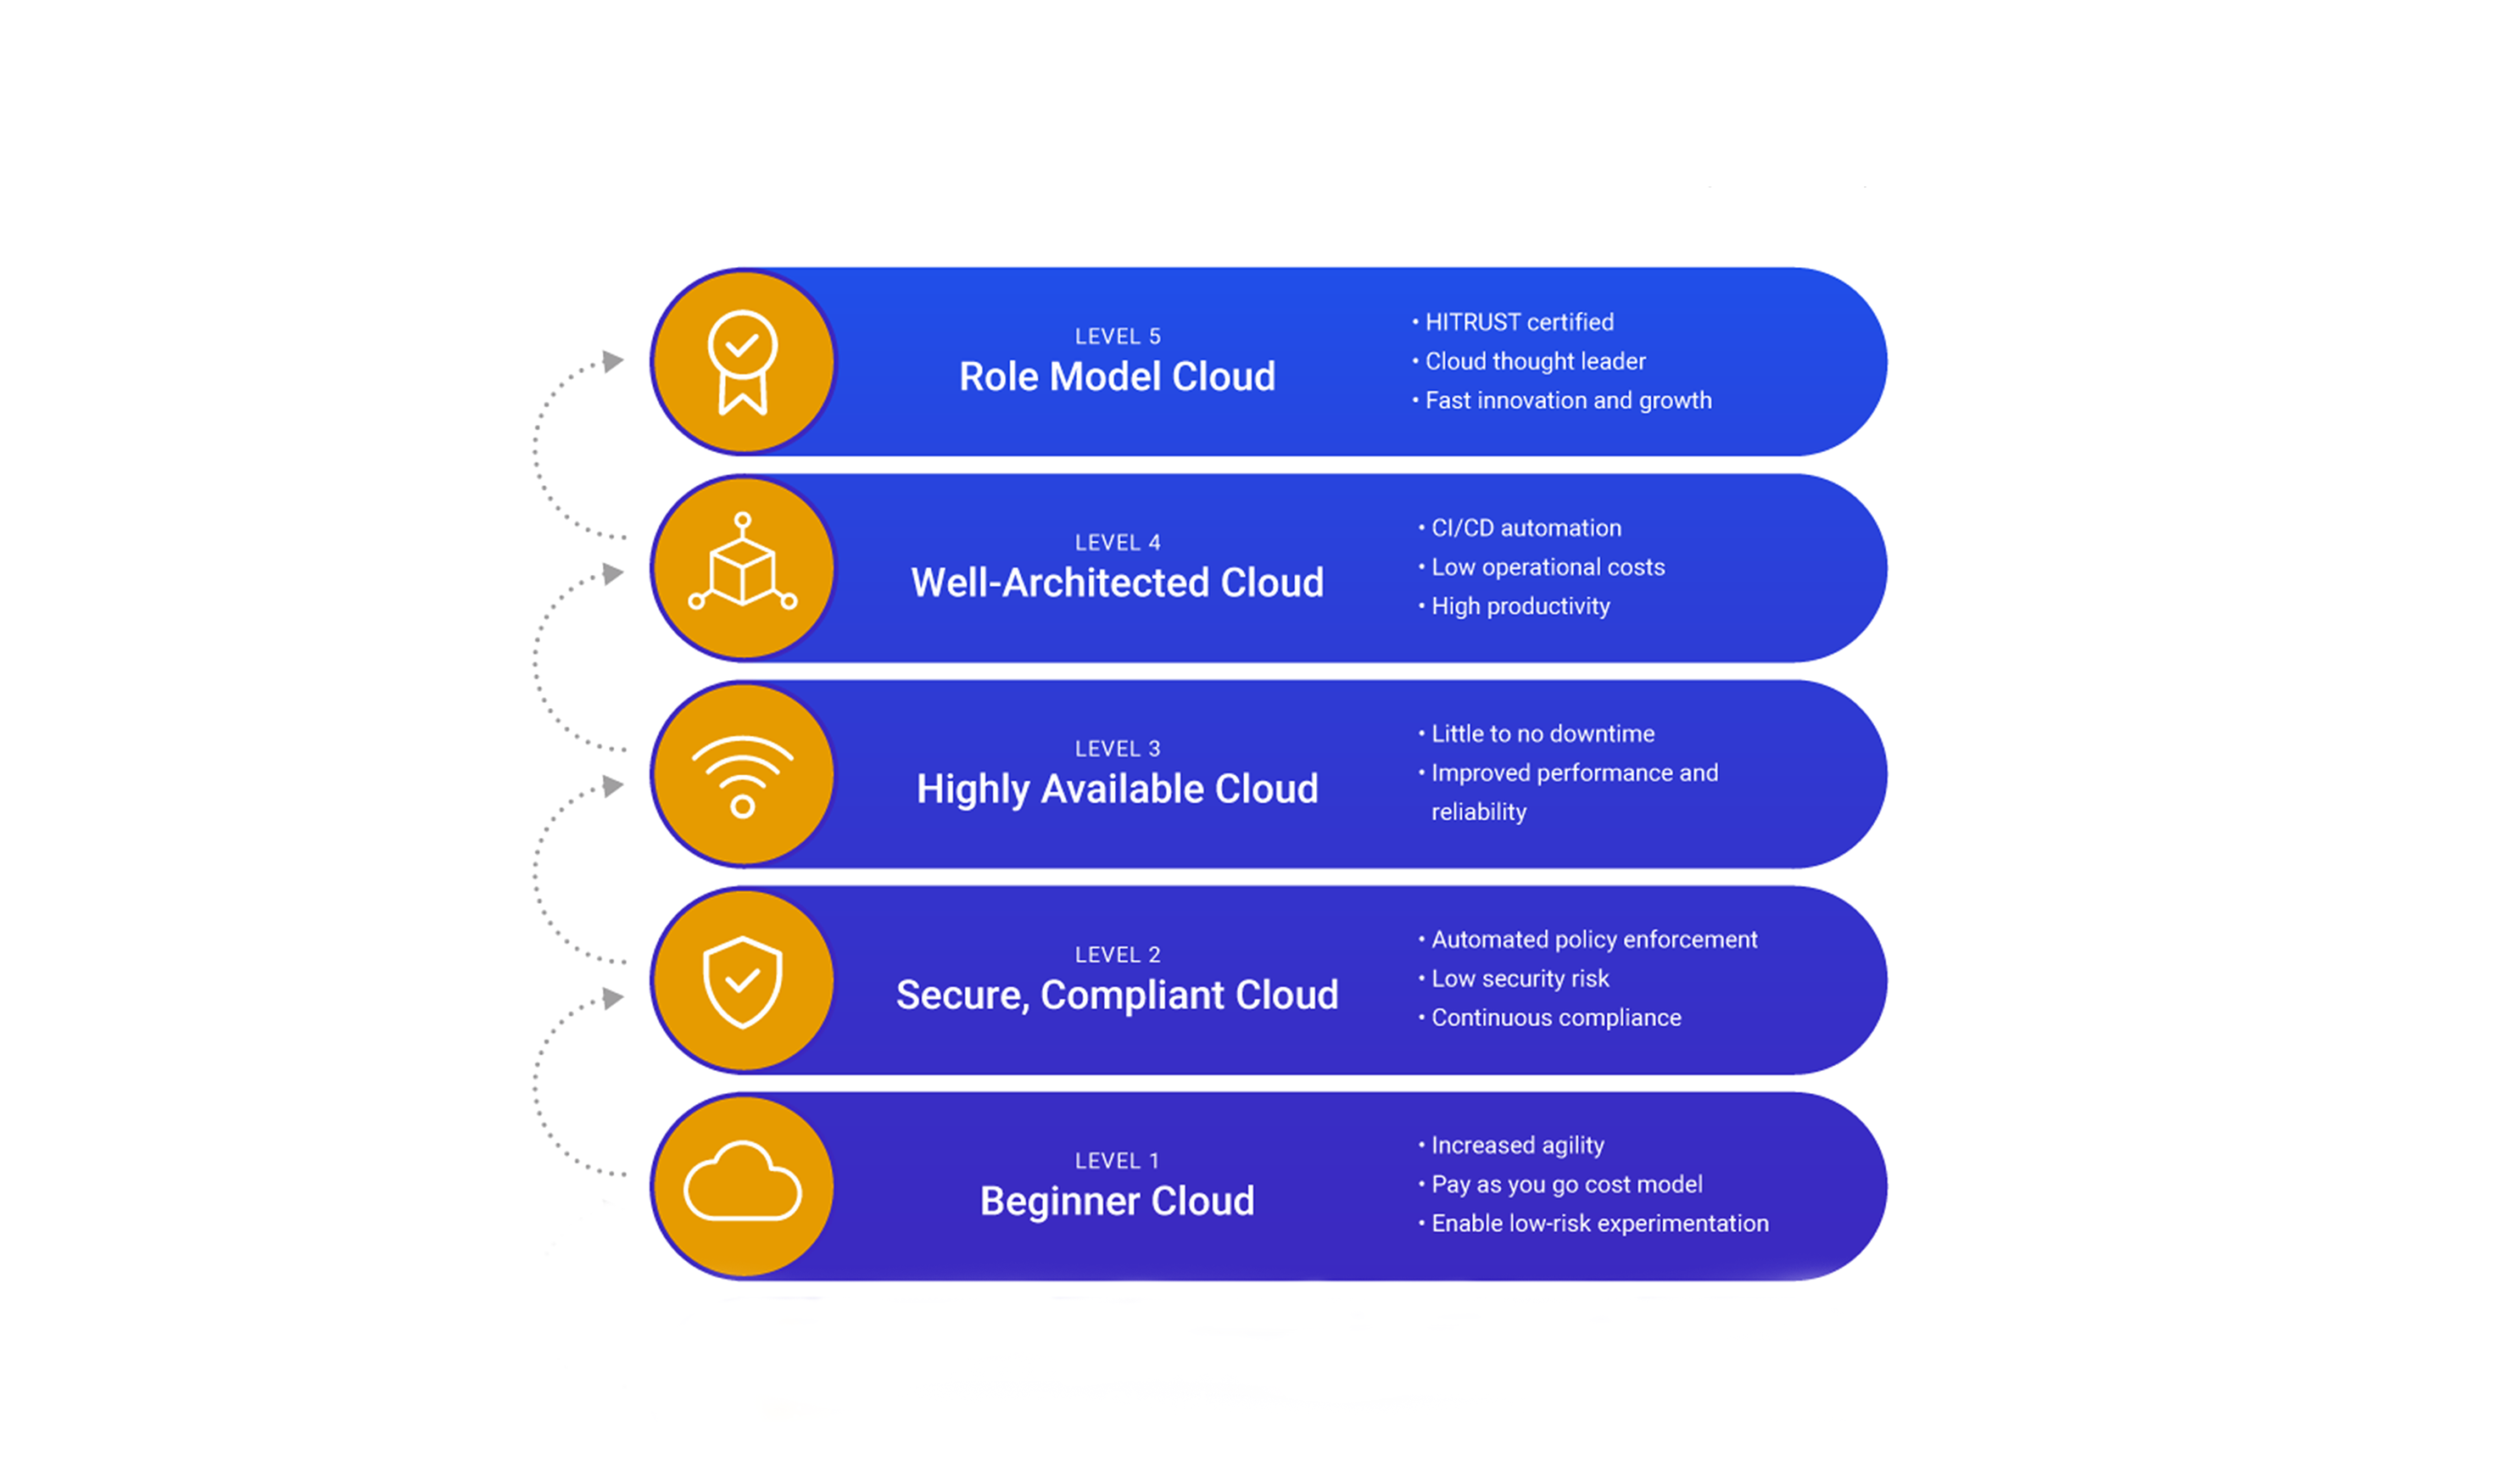 The Cloudticity Cloud Maturity Model: A Holistic Cloud Strategy For Healthcare